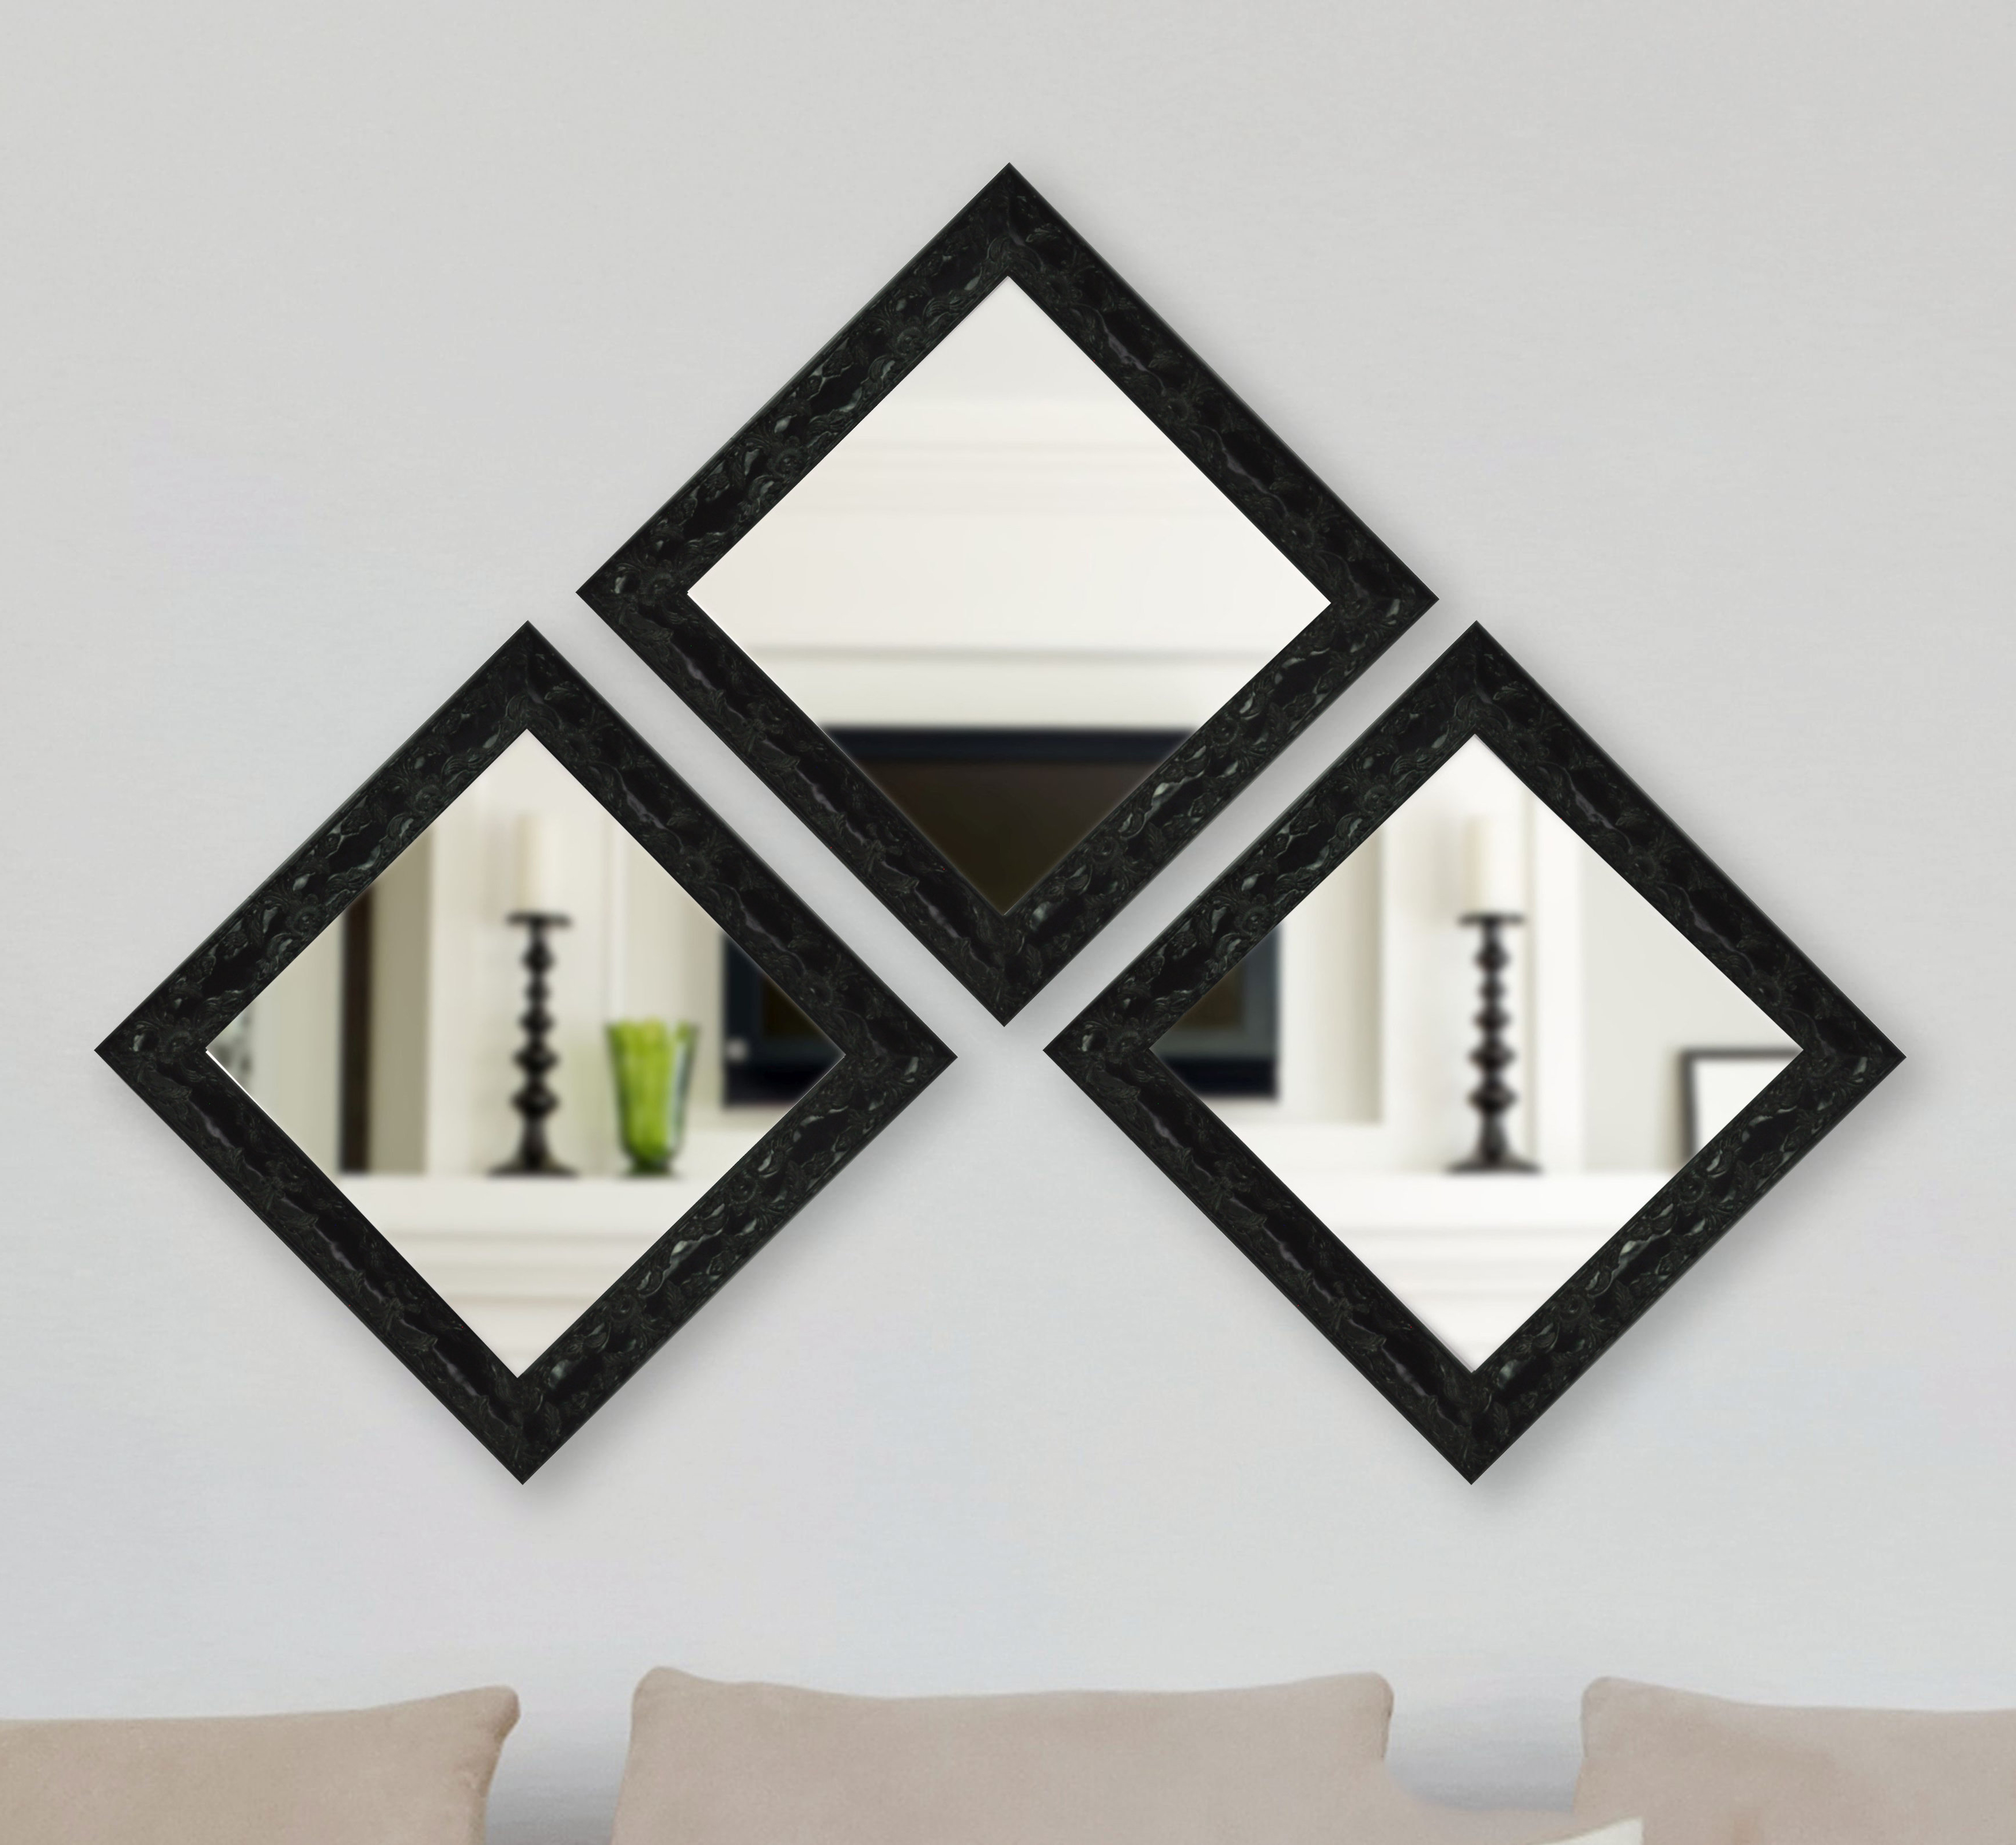 3 Piece Odyssey Mirror Set Intended For 2020 Square Wall Mirror Sets (Gallery 18 of 20)